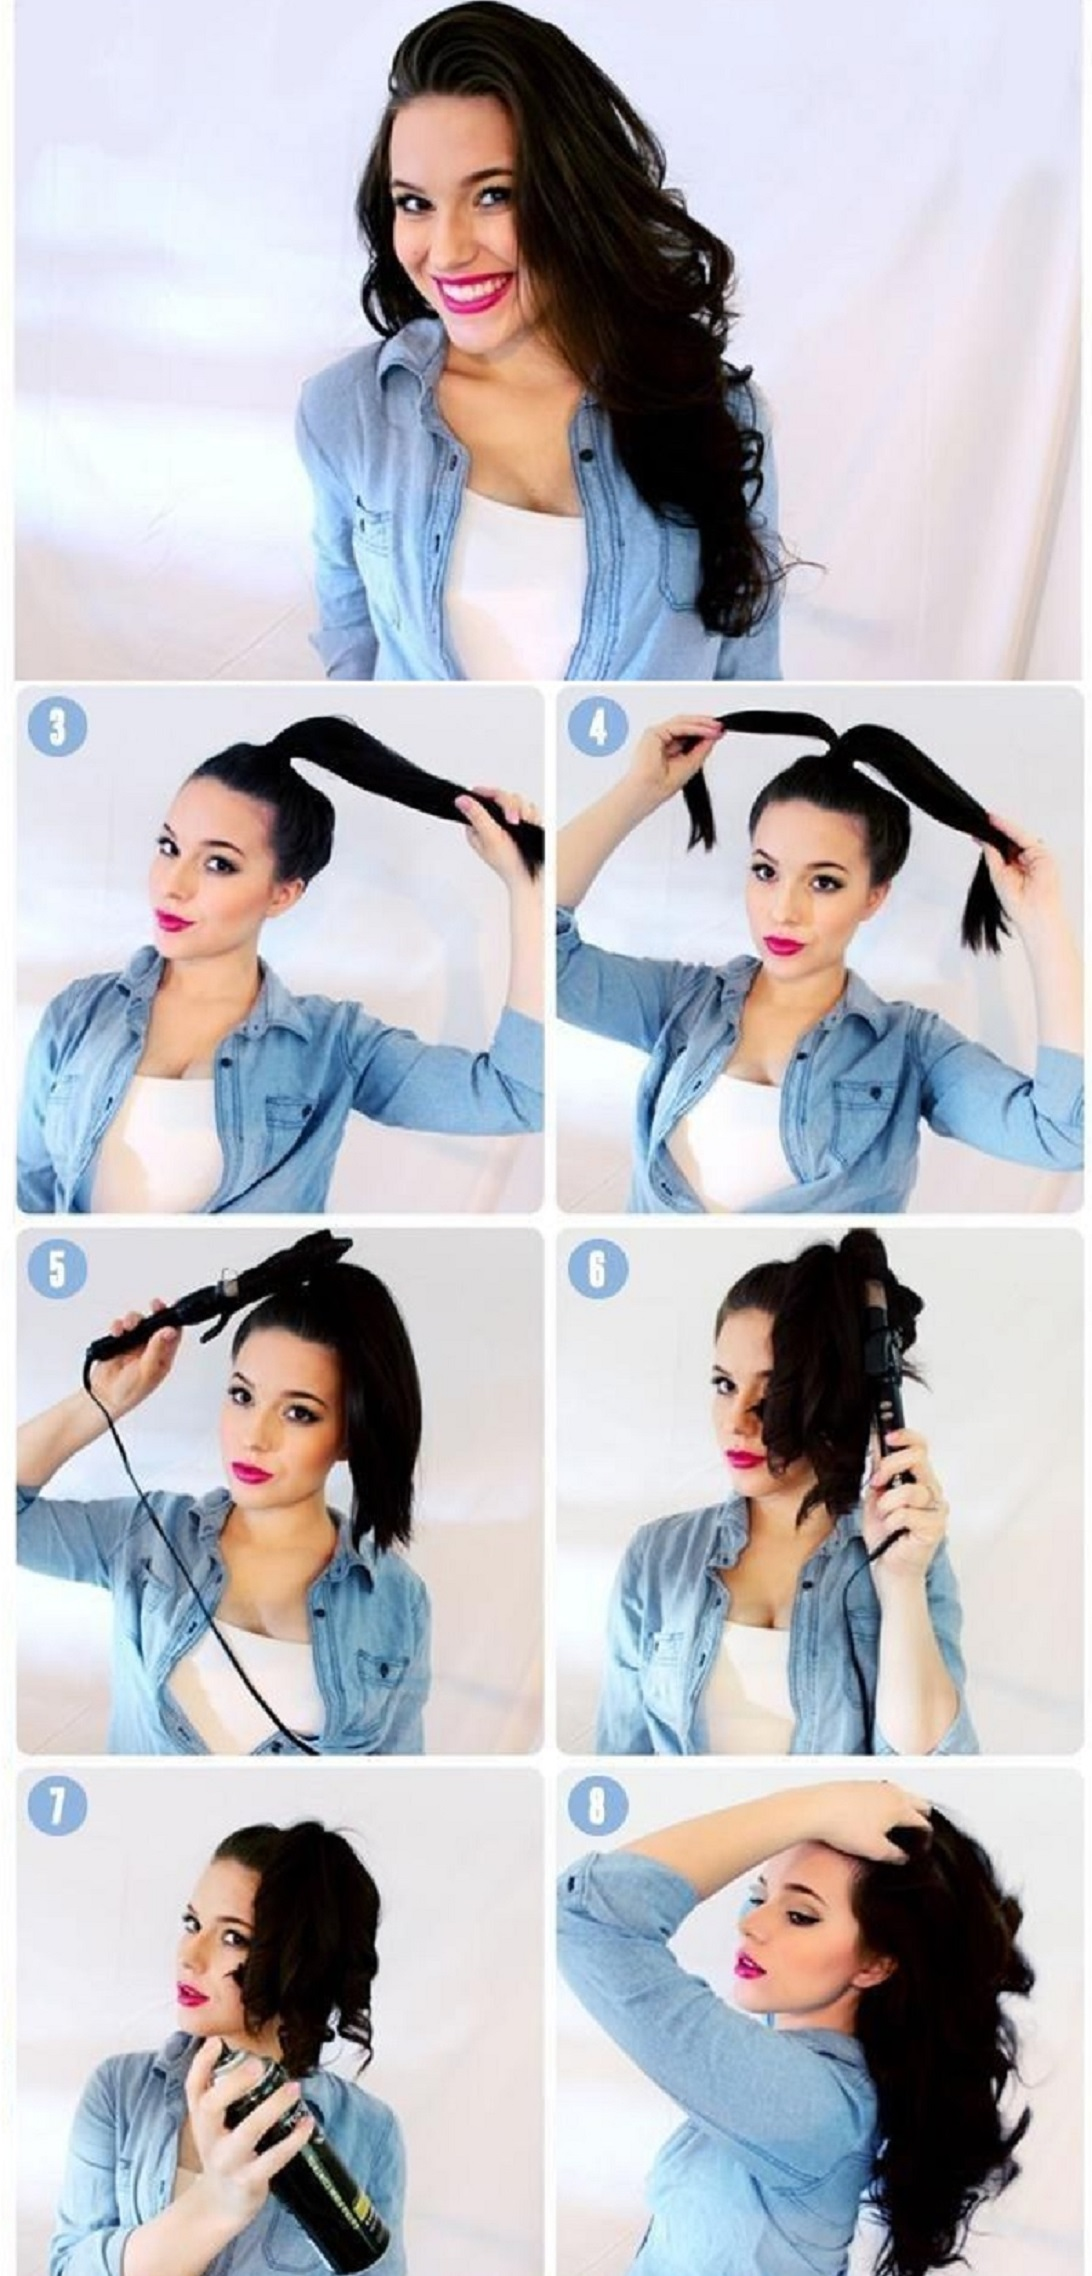 5 Minutes Curls Hairstyling Hacks